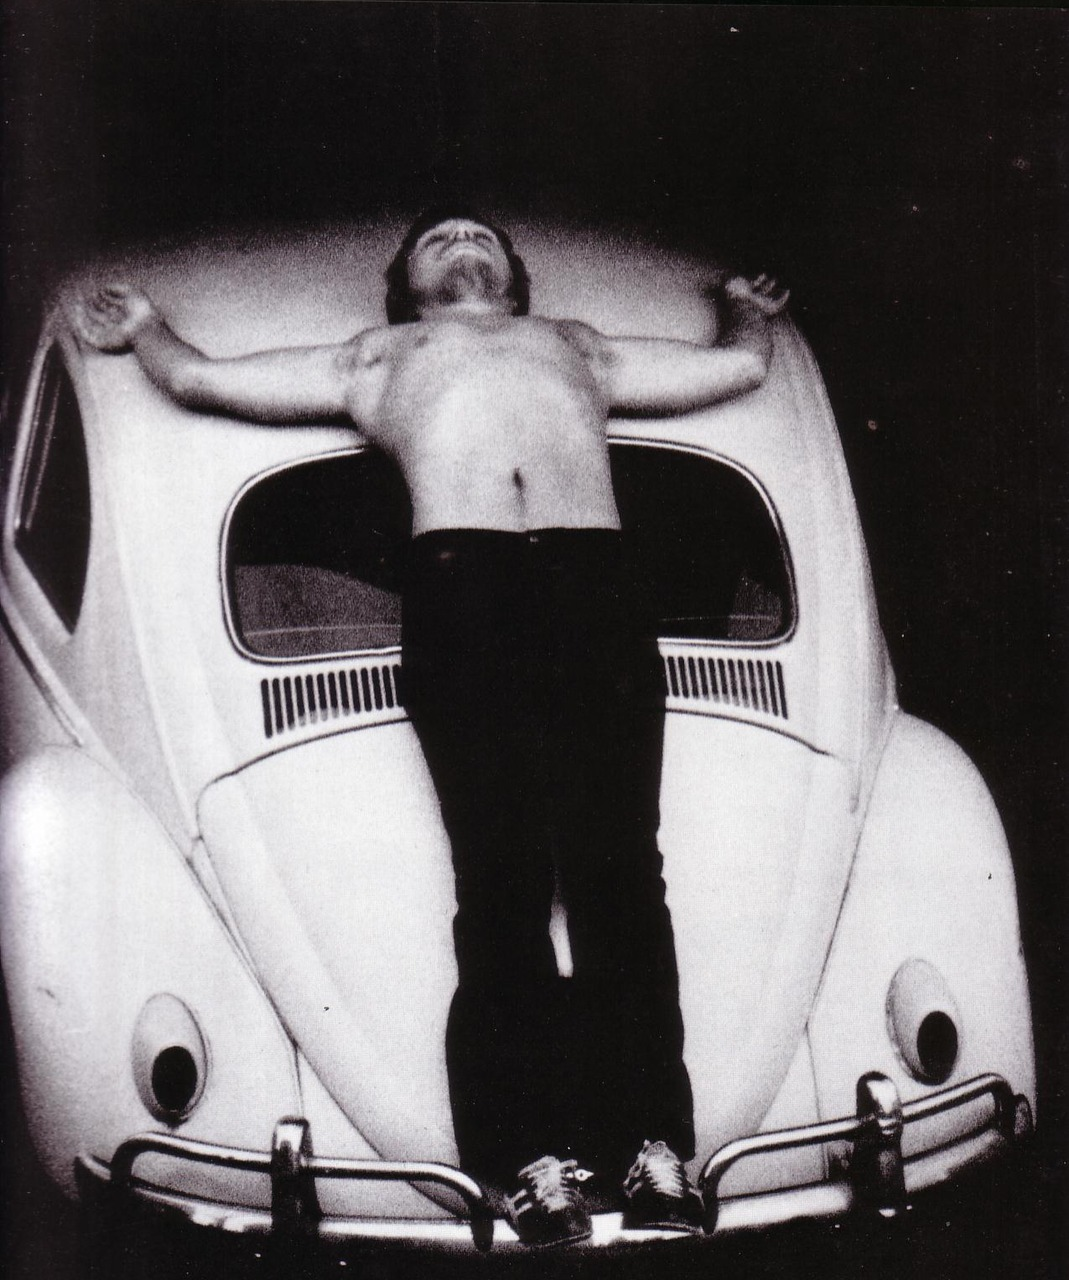 Chris Burden, Transfixed Durante la performance 'Transfixed', Chris Burden si fa letteralmente crocifiggere, su una Volkswagen Beetle, il famoso maggiolino, con dei chiodi infissi nelle mani a martellate. (Leggi l'articolo cliccando sul titolo della foto) cult stories cultstories cinema cult story cultstory art culture music ipse dixit aneddoti citazioni frasi famose aforismi immagini foto personaggi cultura musica storie facts fatti celebrità vip cult chris burden shoot chris burden artista chris burden wikipedia chris burden urban light chris burden extreme measures chris burden art chris burden performance chris burden interview chris burden flying steamroller chris burden velvet water chris burden urban light at lacma chris burden beam drop chris burden biography chris burden book chris burden b car chris burden bridges chris burden brandeis chris burden bed peace chris burden beam chris burden boeing 747 chris burden beam drop inhotim chris burden cars chris burden commercials chris burden coyote chris burden crawling through glass chris burden coyote stories chris burden chiropractor chris burden city chris burden.com chris cornell burden in my hand chris burden pizza city chris burden chris burden documentary chris burden disappearing chris burden david bowie chris burden beam drop 1984 chris burden of dracula chris burden beam drop brazil chris murray burden of disease chris burden beam drop inhotim 2008 chris burden extreme measures book chris burden exposing the foundation chris burden early life chris burden facebook chris burden full financial disclosure chris burden glass chris burden gagosian chris burden gallery chris burden ghost ship chris burden instagram chris burden icarus chris cornell burden in my hand acoustic who is chris burden chris burden joe the lion christopher burden jr christopher j burden chris burden lacma chris burden lights chris burden lamp posts chris burden linkedin chris burden life chris burden los angeles chris burden lacma urban light chris burden la chris burden metropolis ii video chris burden metropolis vimeo chris burden motorcycle chris burden magasin 3 chris burden new museum chris burden new york chris burden official website chris burden opere chris burden presents chris burden promo chris burden photography chris burden postmodernism chris burden poem for la chris burden porsche chris burden pdf chris burden quotes chris burden rugby chris burden review chris burden tv commercials chris burden tv hijack chris burden twitter chris burden tate chris burden the reason for the neutron bomb chris burden through night softly 1973 chris burden the other vietnam memorial chris burden usd chris burden ucla chris burden uc irvine chris burden urban light address chris burden ubuweb chris burden youtube chris burden urban lights chris burden volkswagen chris burden video chris burden video art chris burden vietnam memorial chris burden 2013